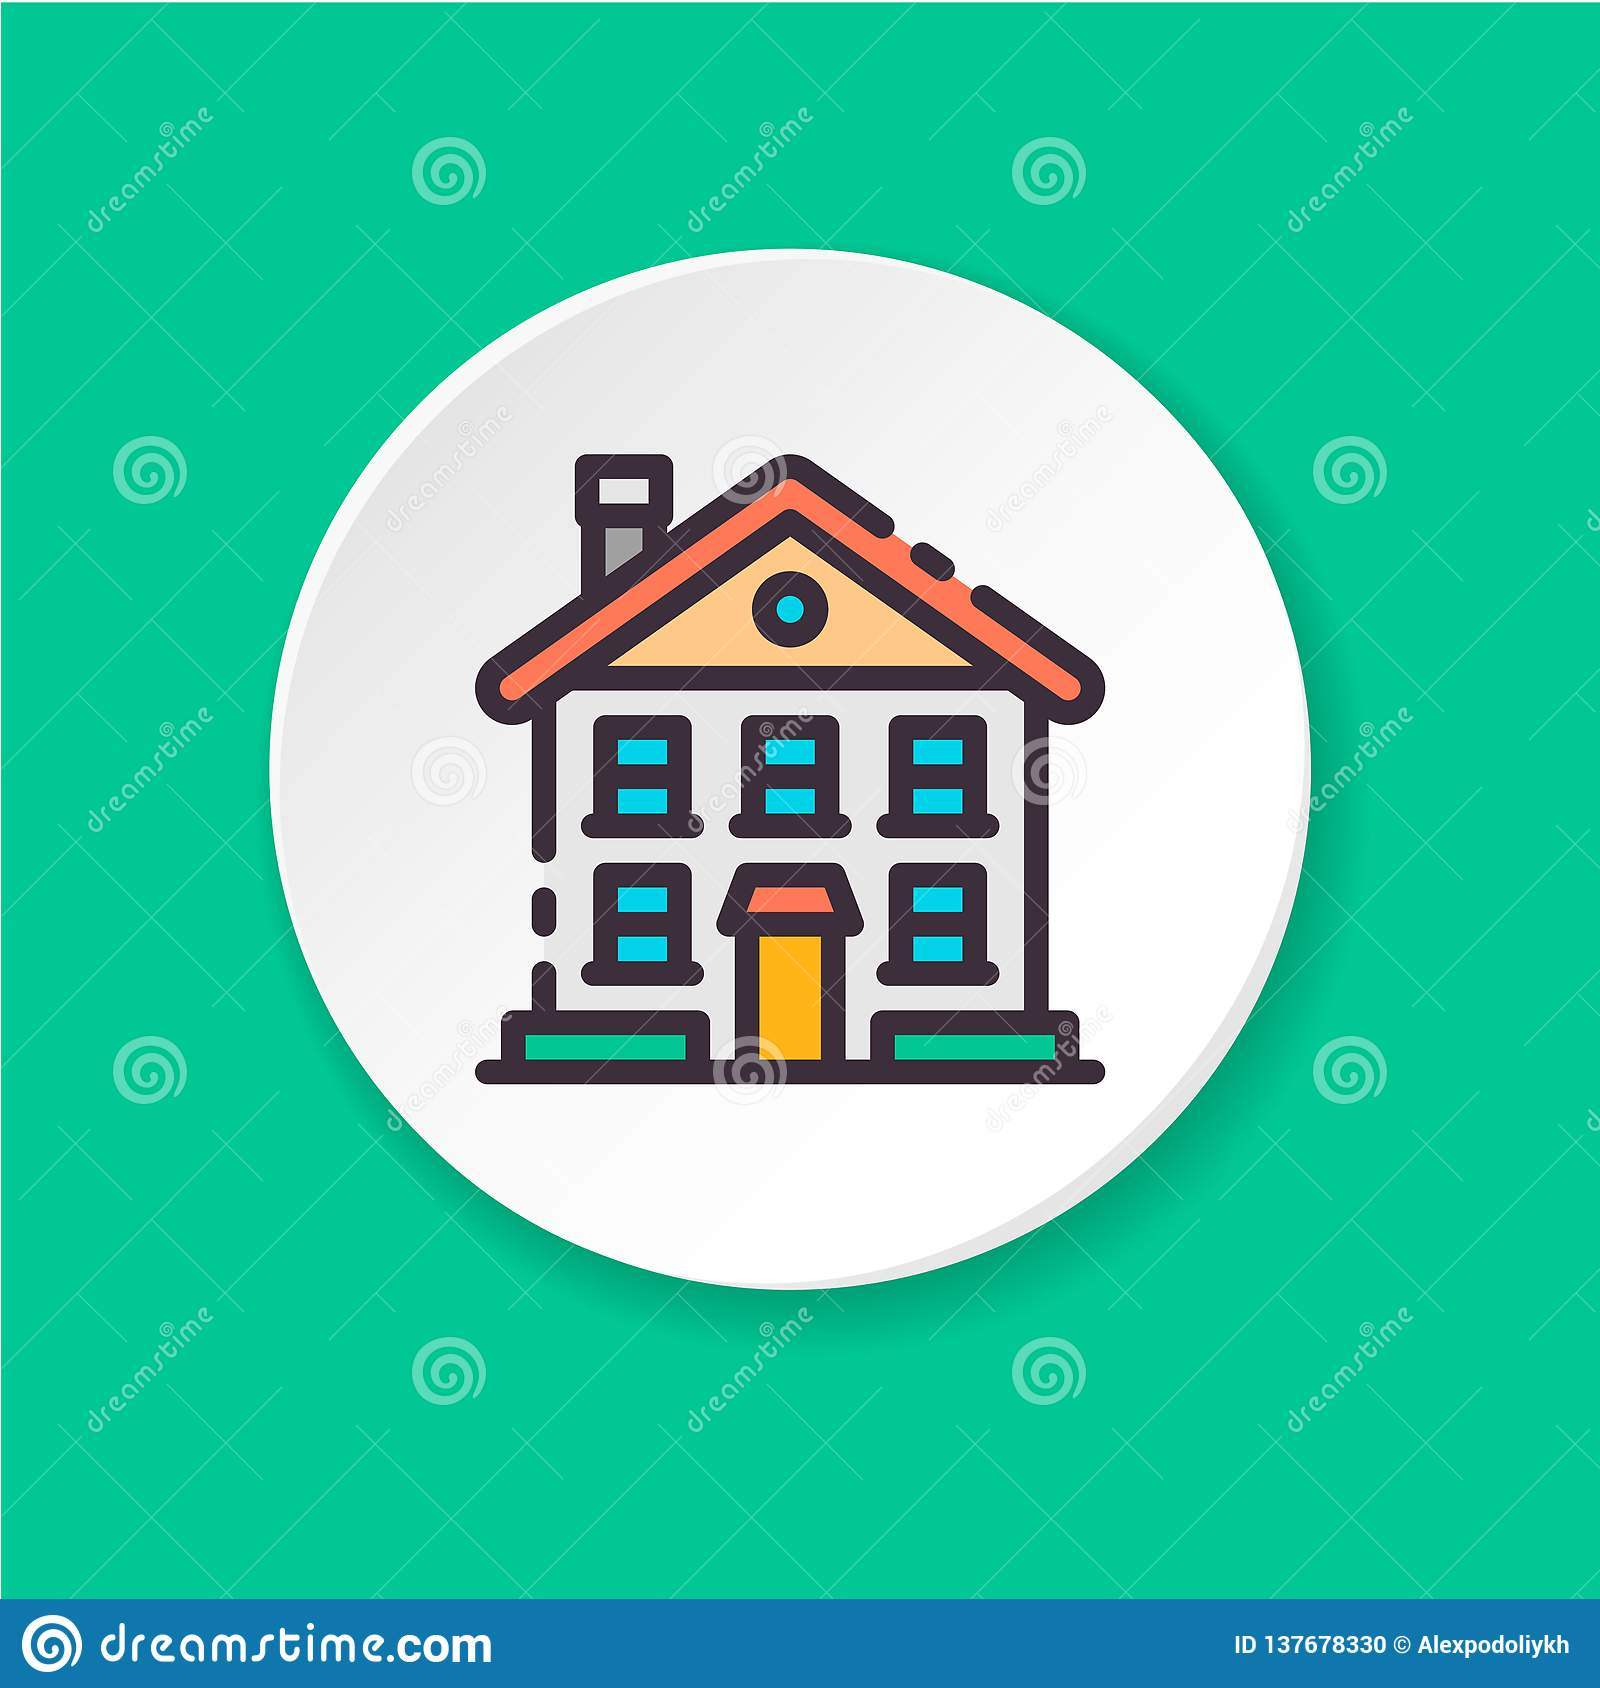 Flat icon two-storey house. UI/UX user interface.